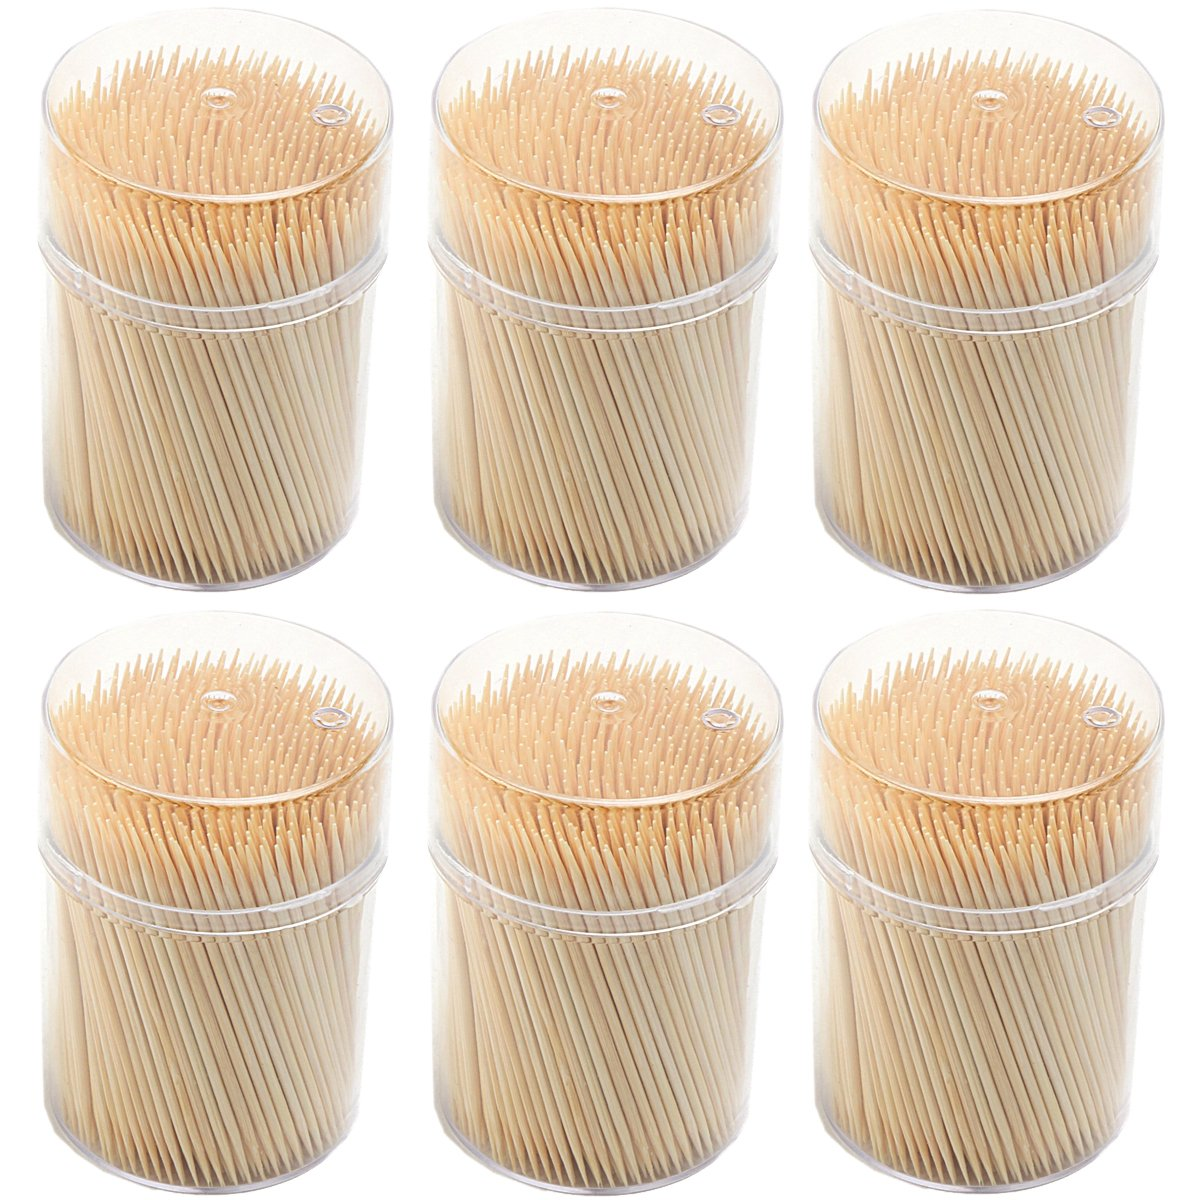 Round Wooden Toothpick 3000 Count - Double Sided Natural Splinter-Free Bamboo Wood for Safe Teeth and Gum Care - 6 Portable Dispensers with 500 Pieces Tooth Picks Per Holder 5-Star Precision